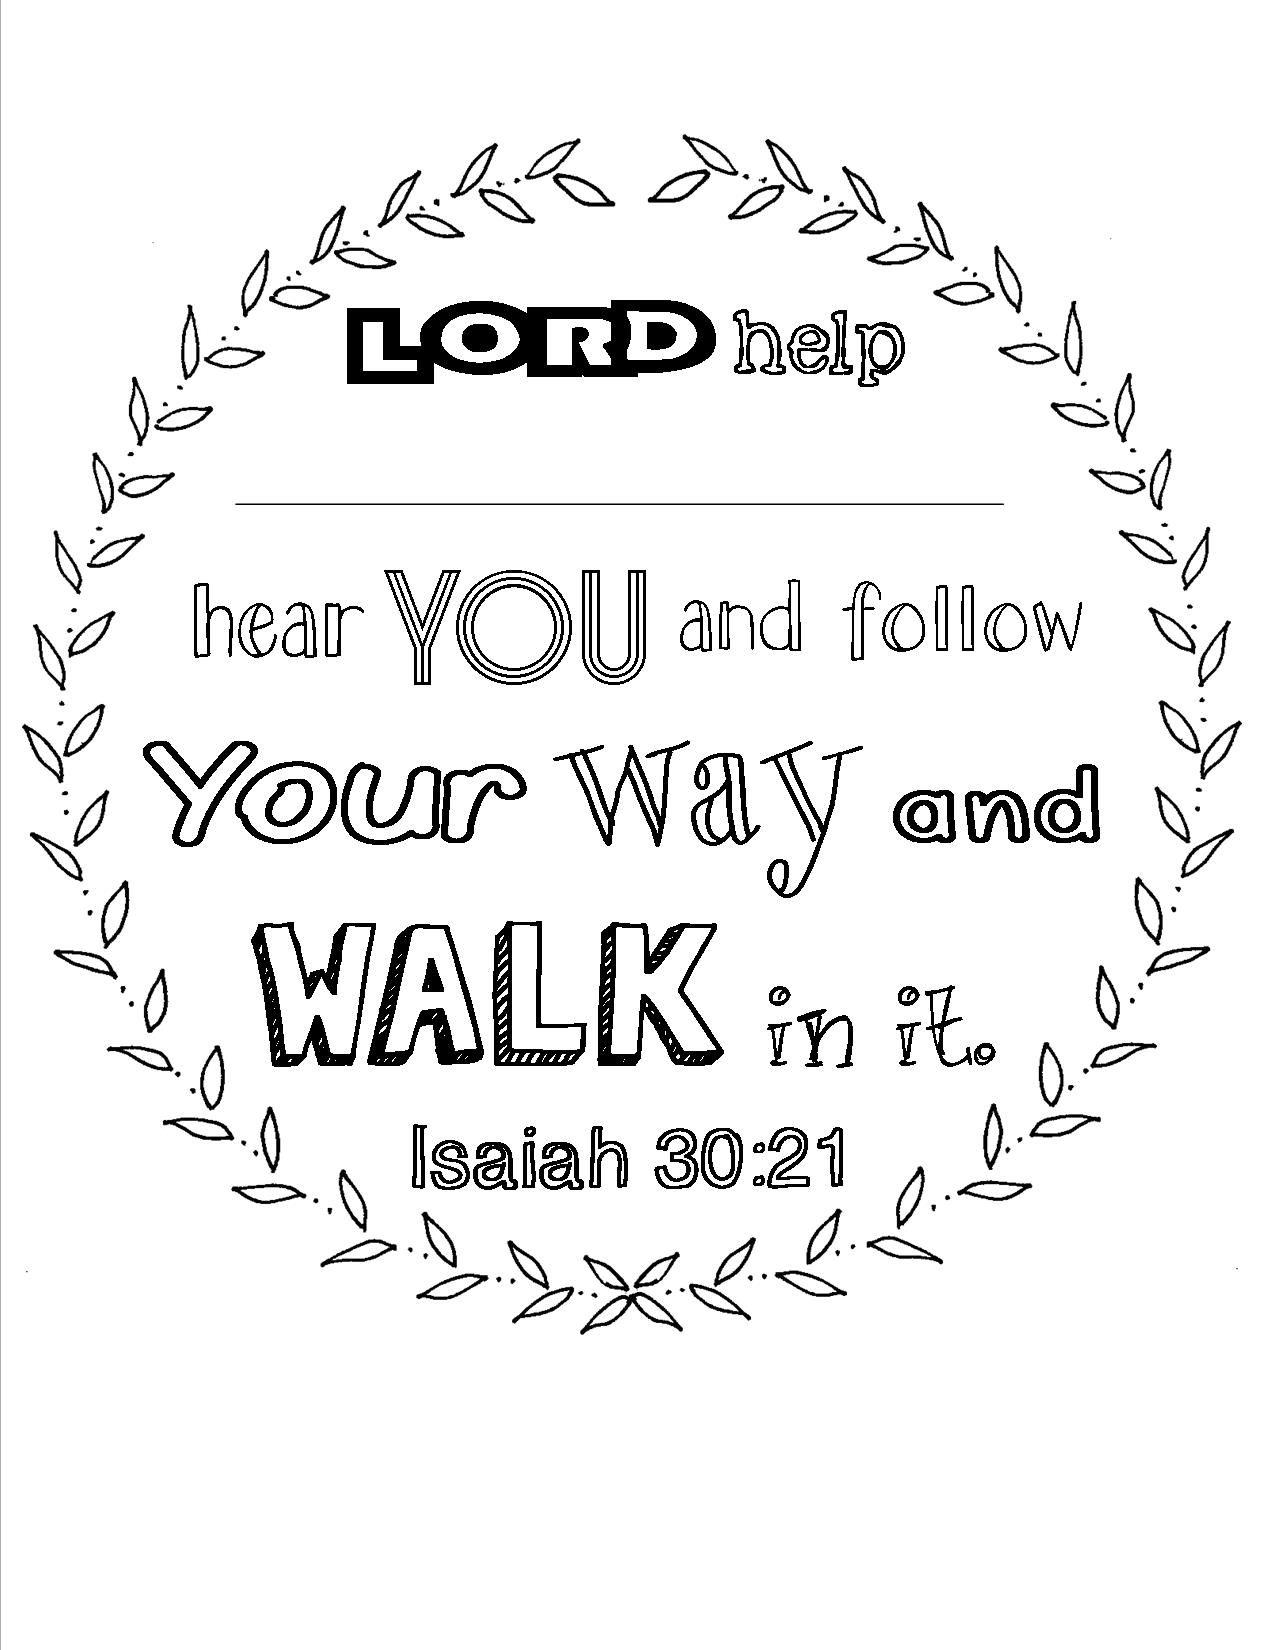 scripture coloring page Isaiah 30:21. Place for personalization